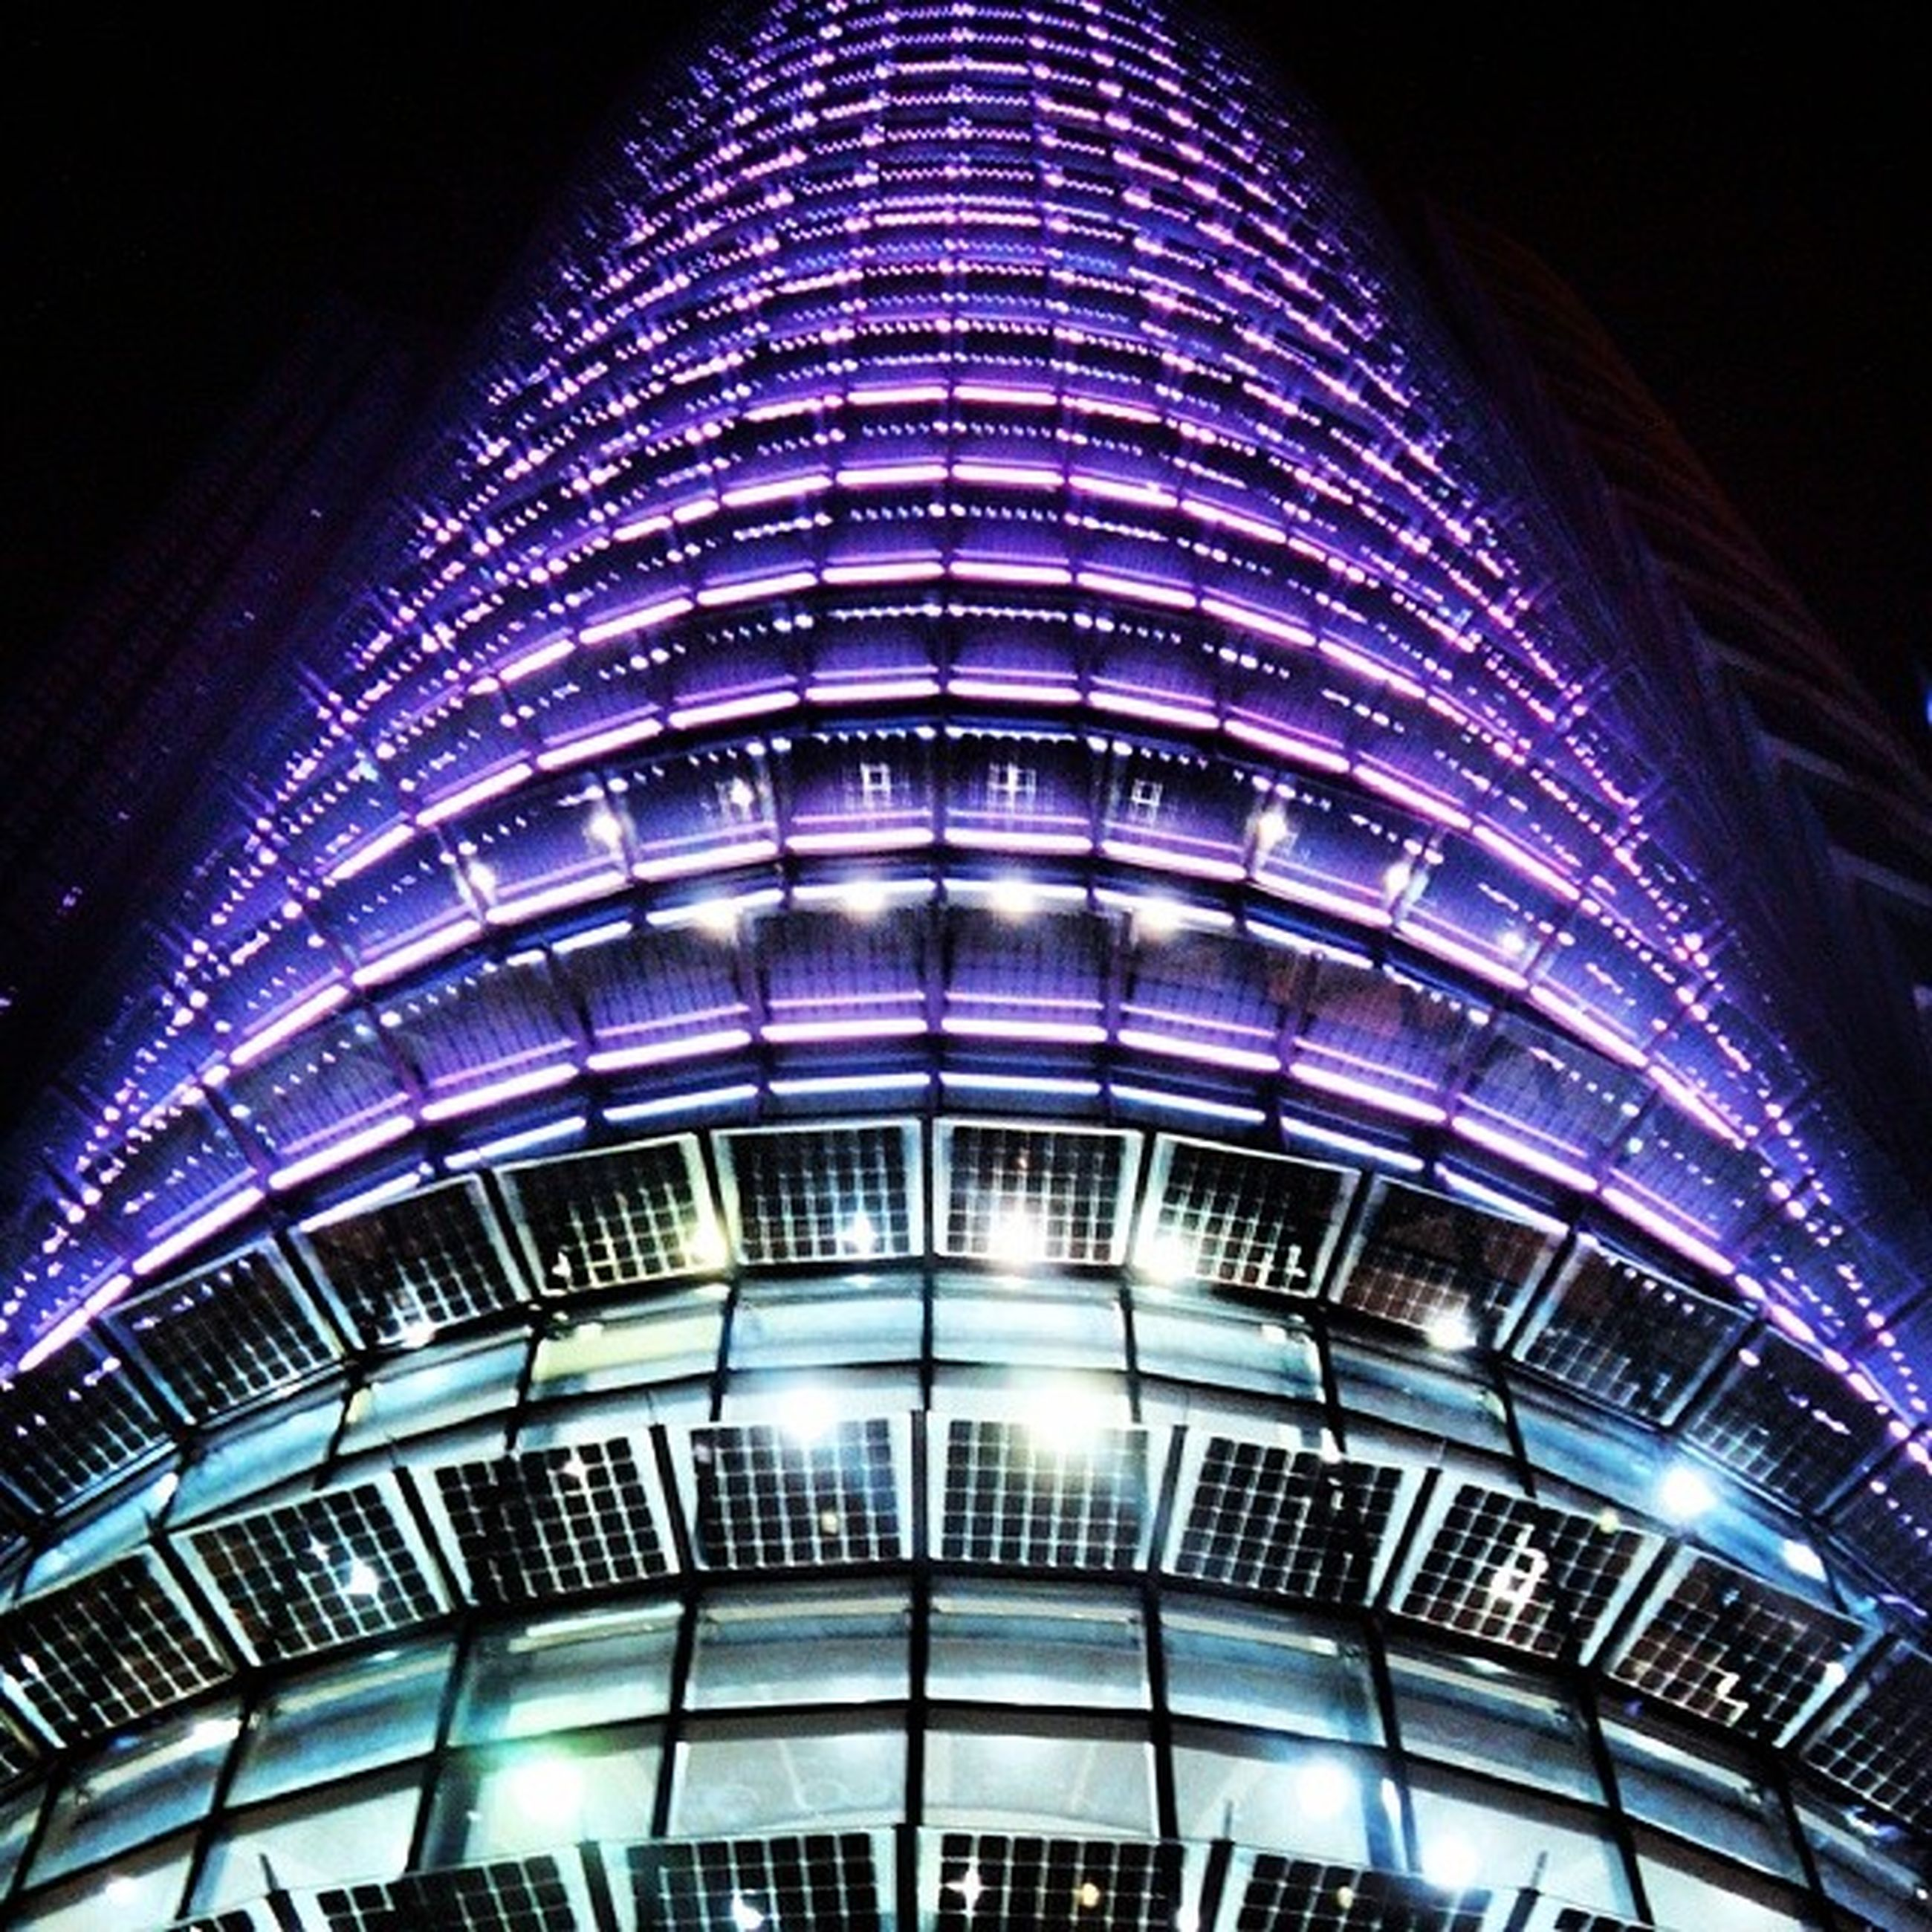 architecture, built structure, low angle view, illuminated, night, building exterior, modern, city, building, pattern, glass - material, window, no people, office building, indoors, skyscraper, architectural feature, reflection, railing